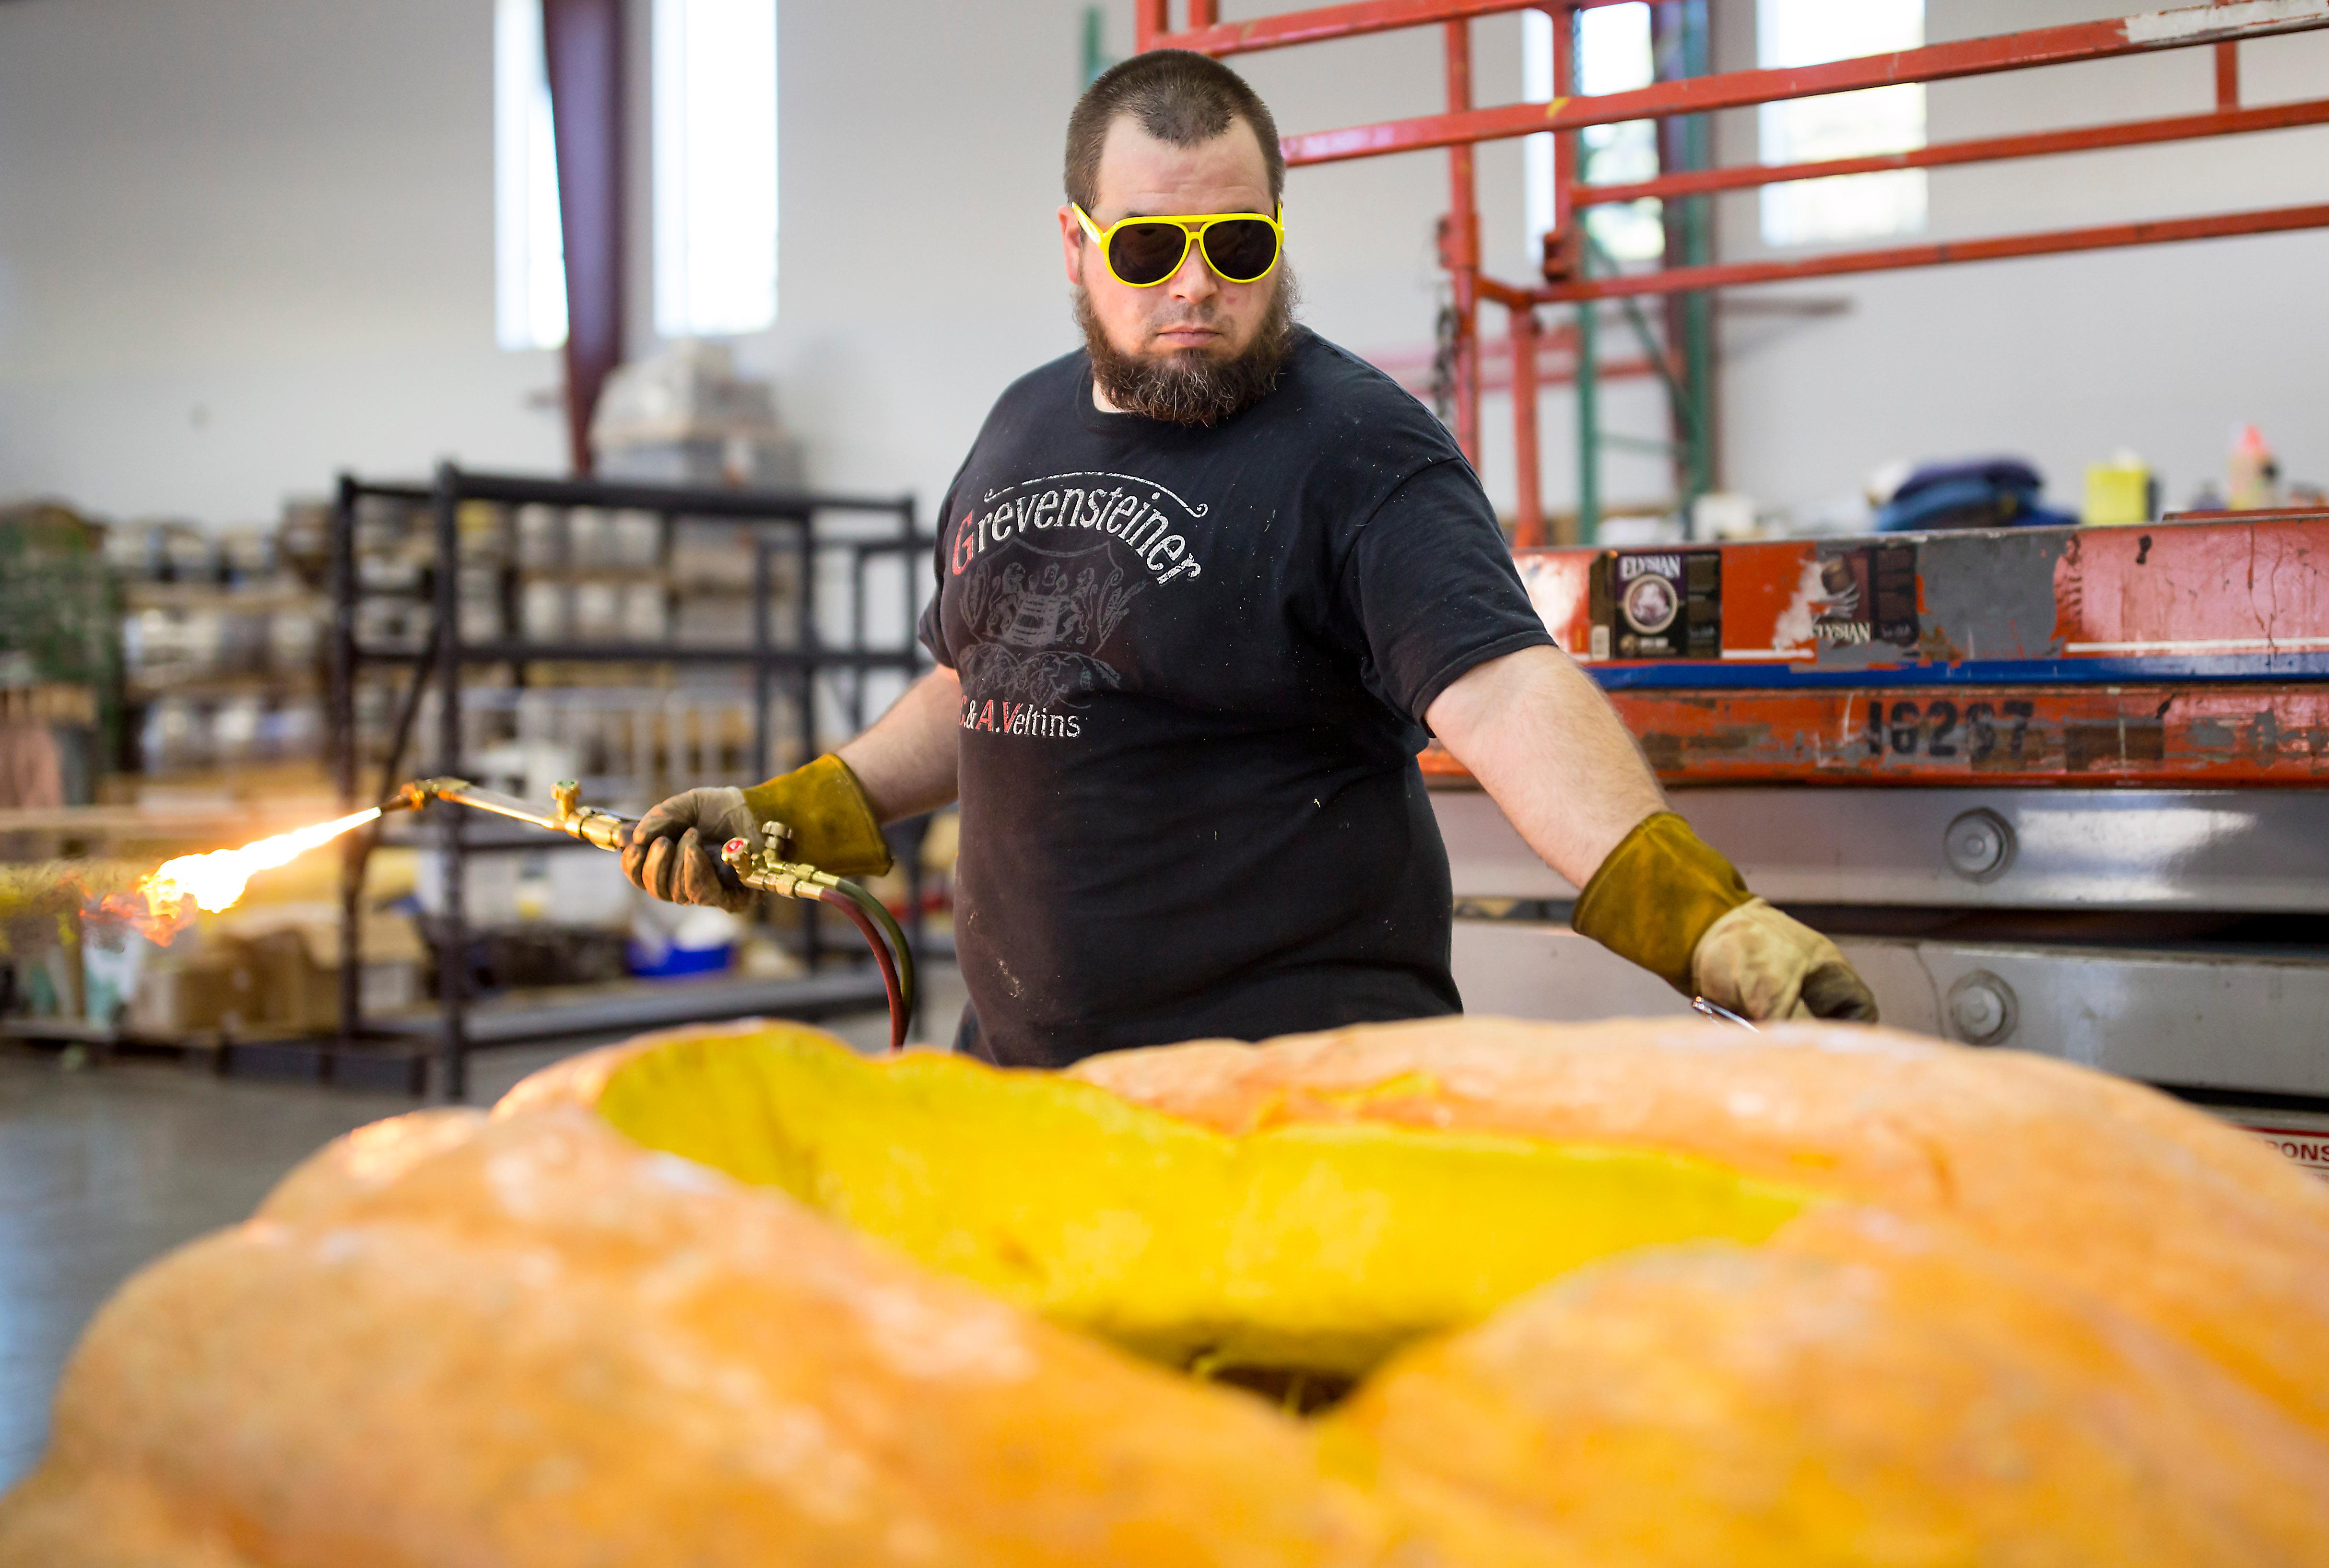 With blowtorch in hand, Elysian cellarmaster Dan-o slowly transforms a massive pumpkin into a usable keg for the Great Pumpkin Beer Festival that will take place this weekend at the Seattle Center. (Sy Bean / Seattle Refined)